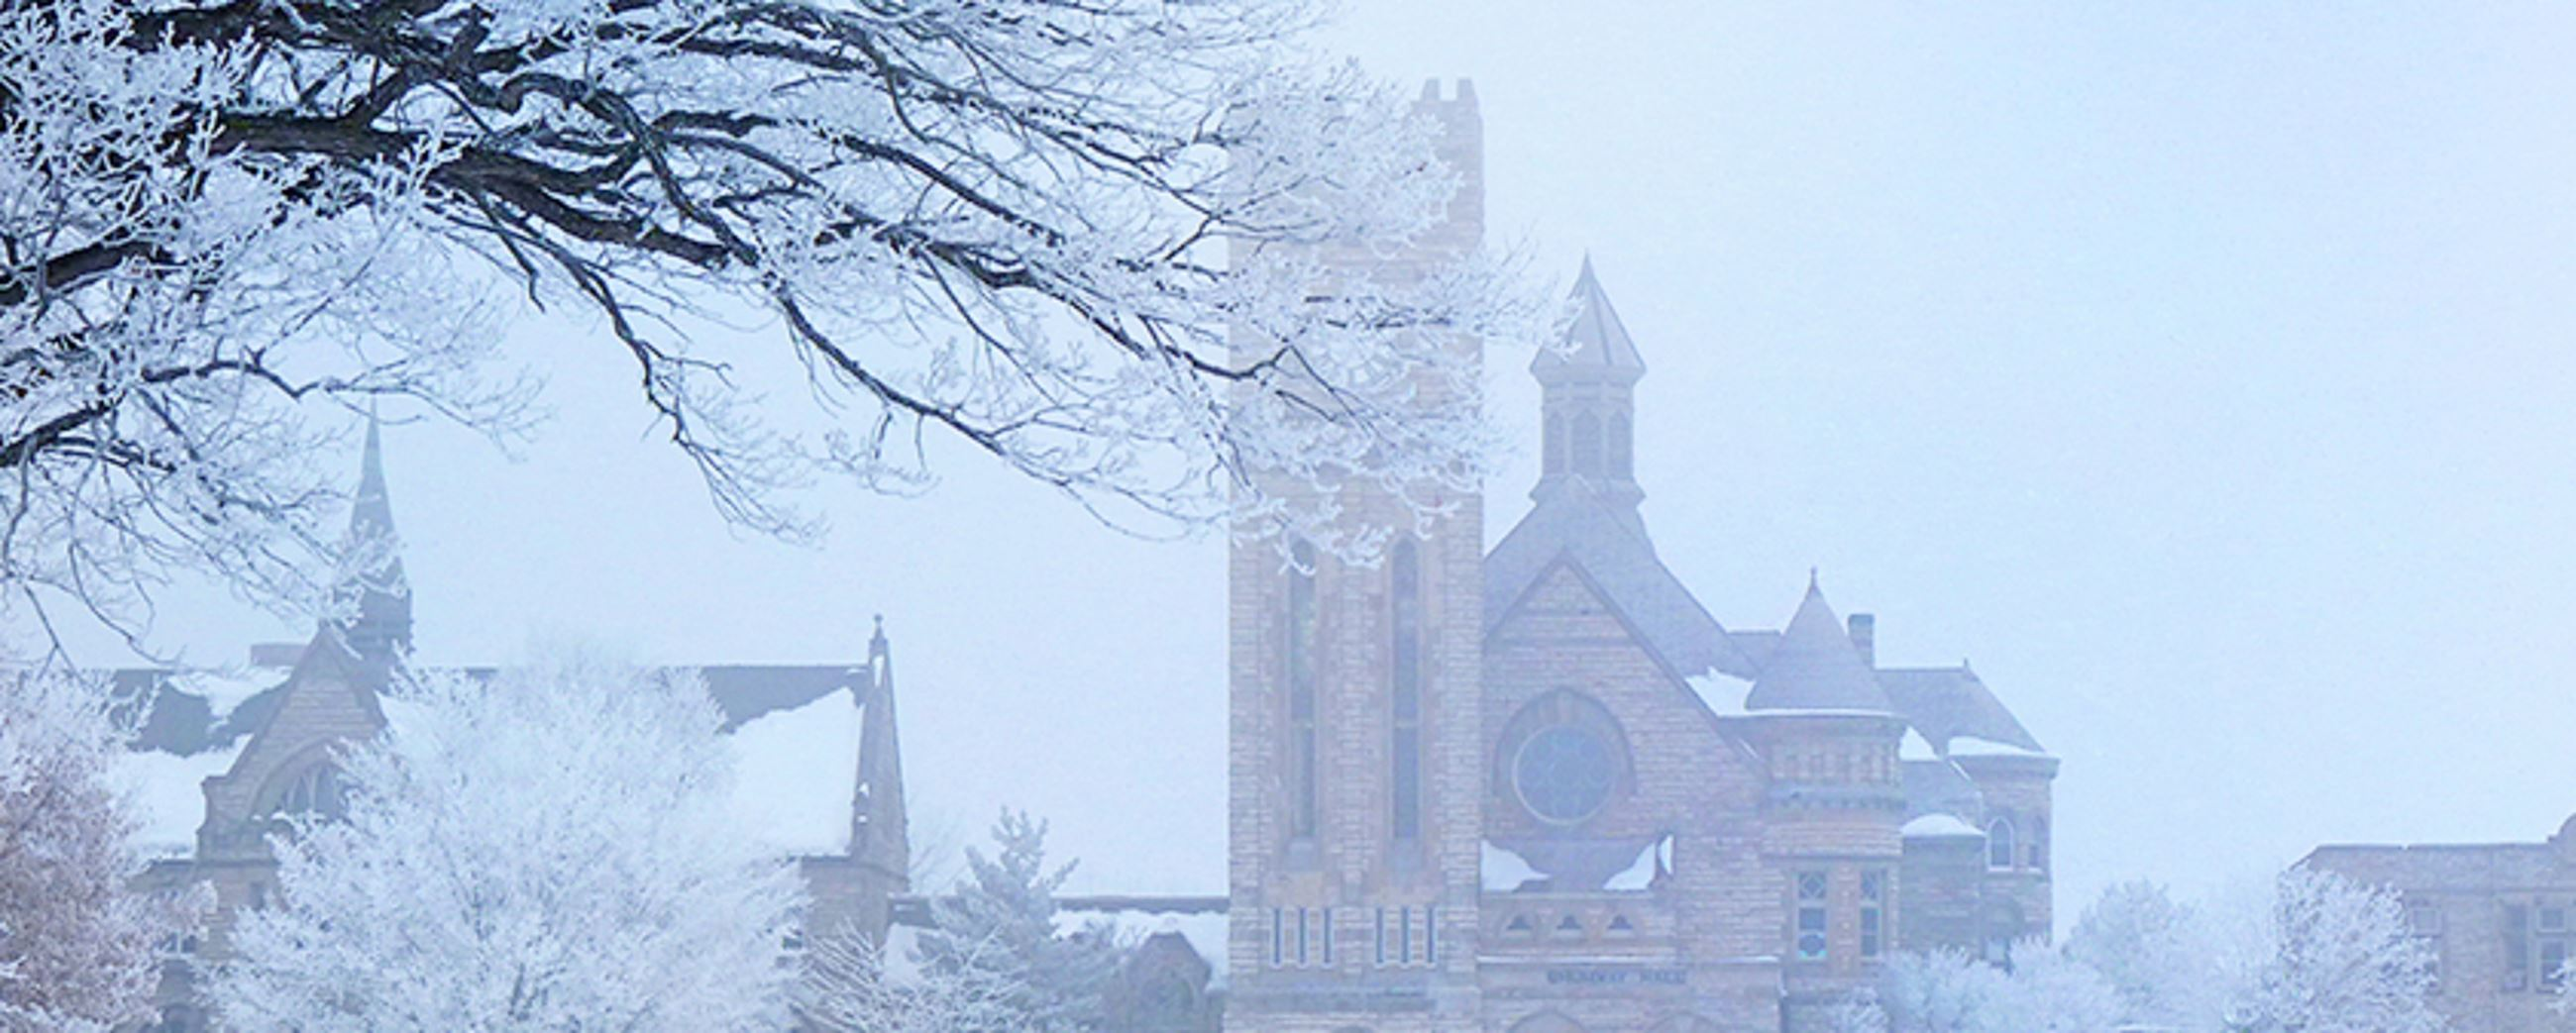 SHattuck Winter